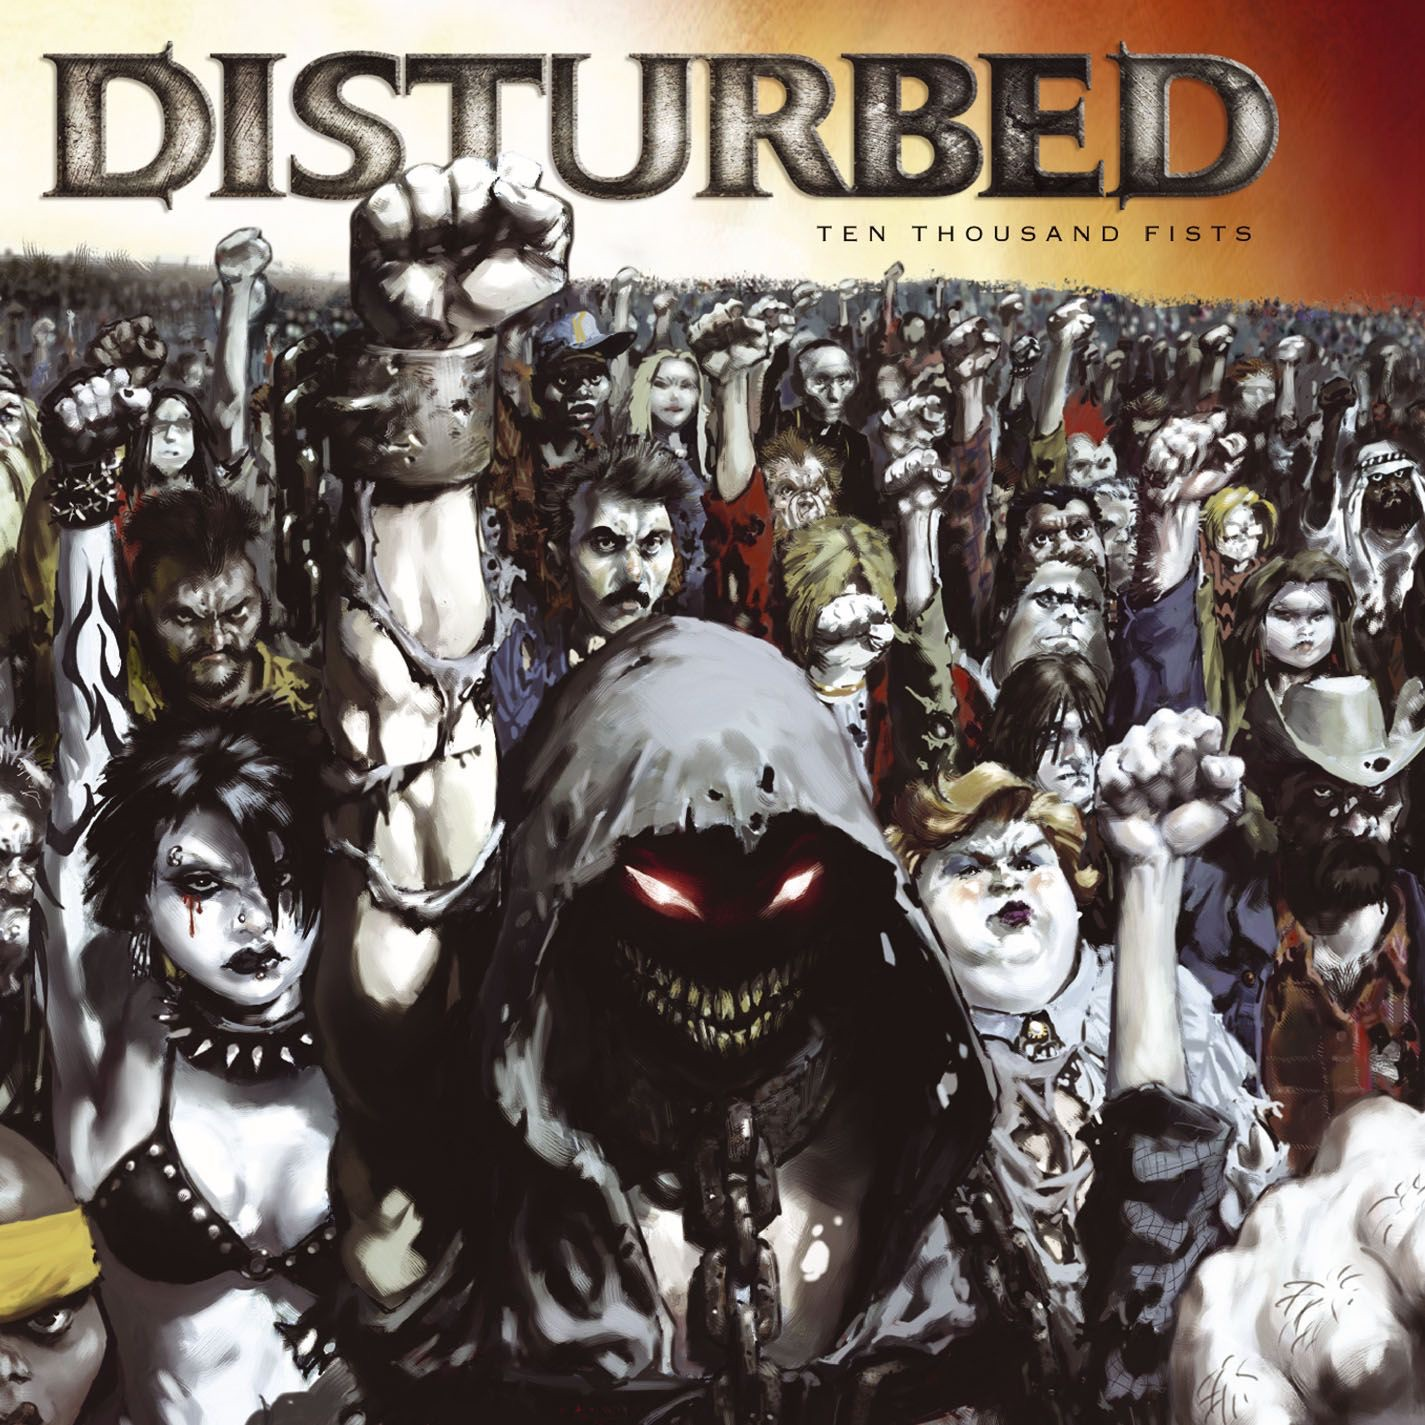 Decadence by Disturbed